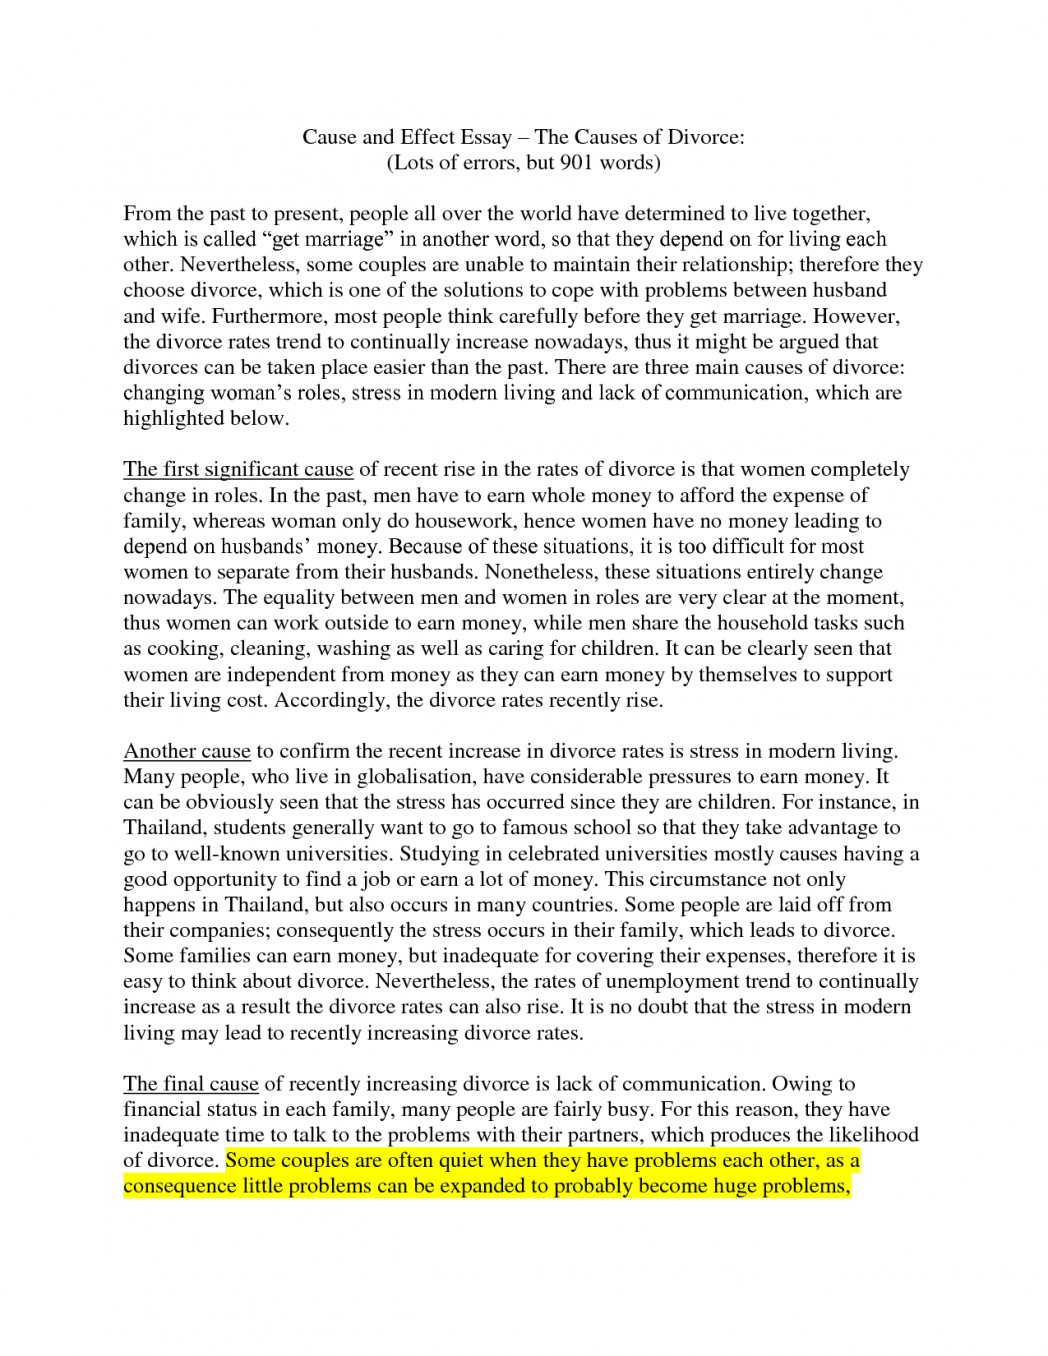 002 Essay Example Causes Of Divorce How To Write An Cause And Effect Formal Letter Sample Cv V5kyg Outline Beautiful Conclusion Pdf Rate Full